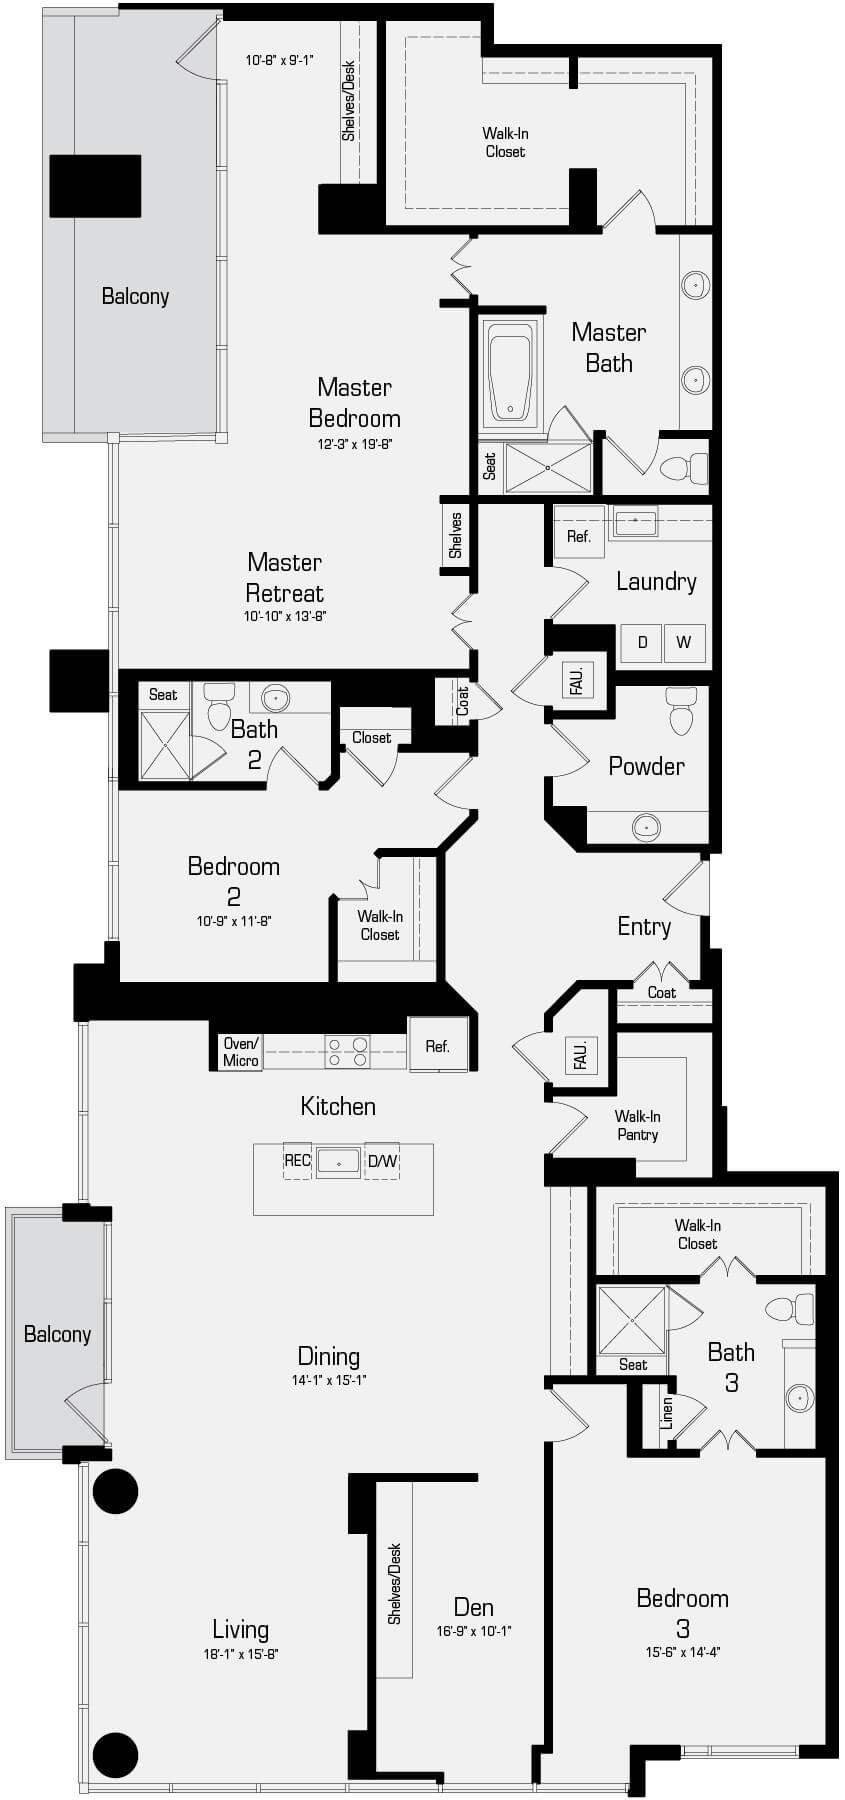 Plan P4 - 3 Bedroom Penthouse, 3.5 Bath